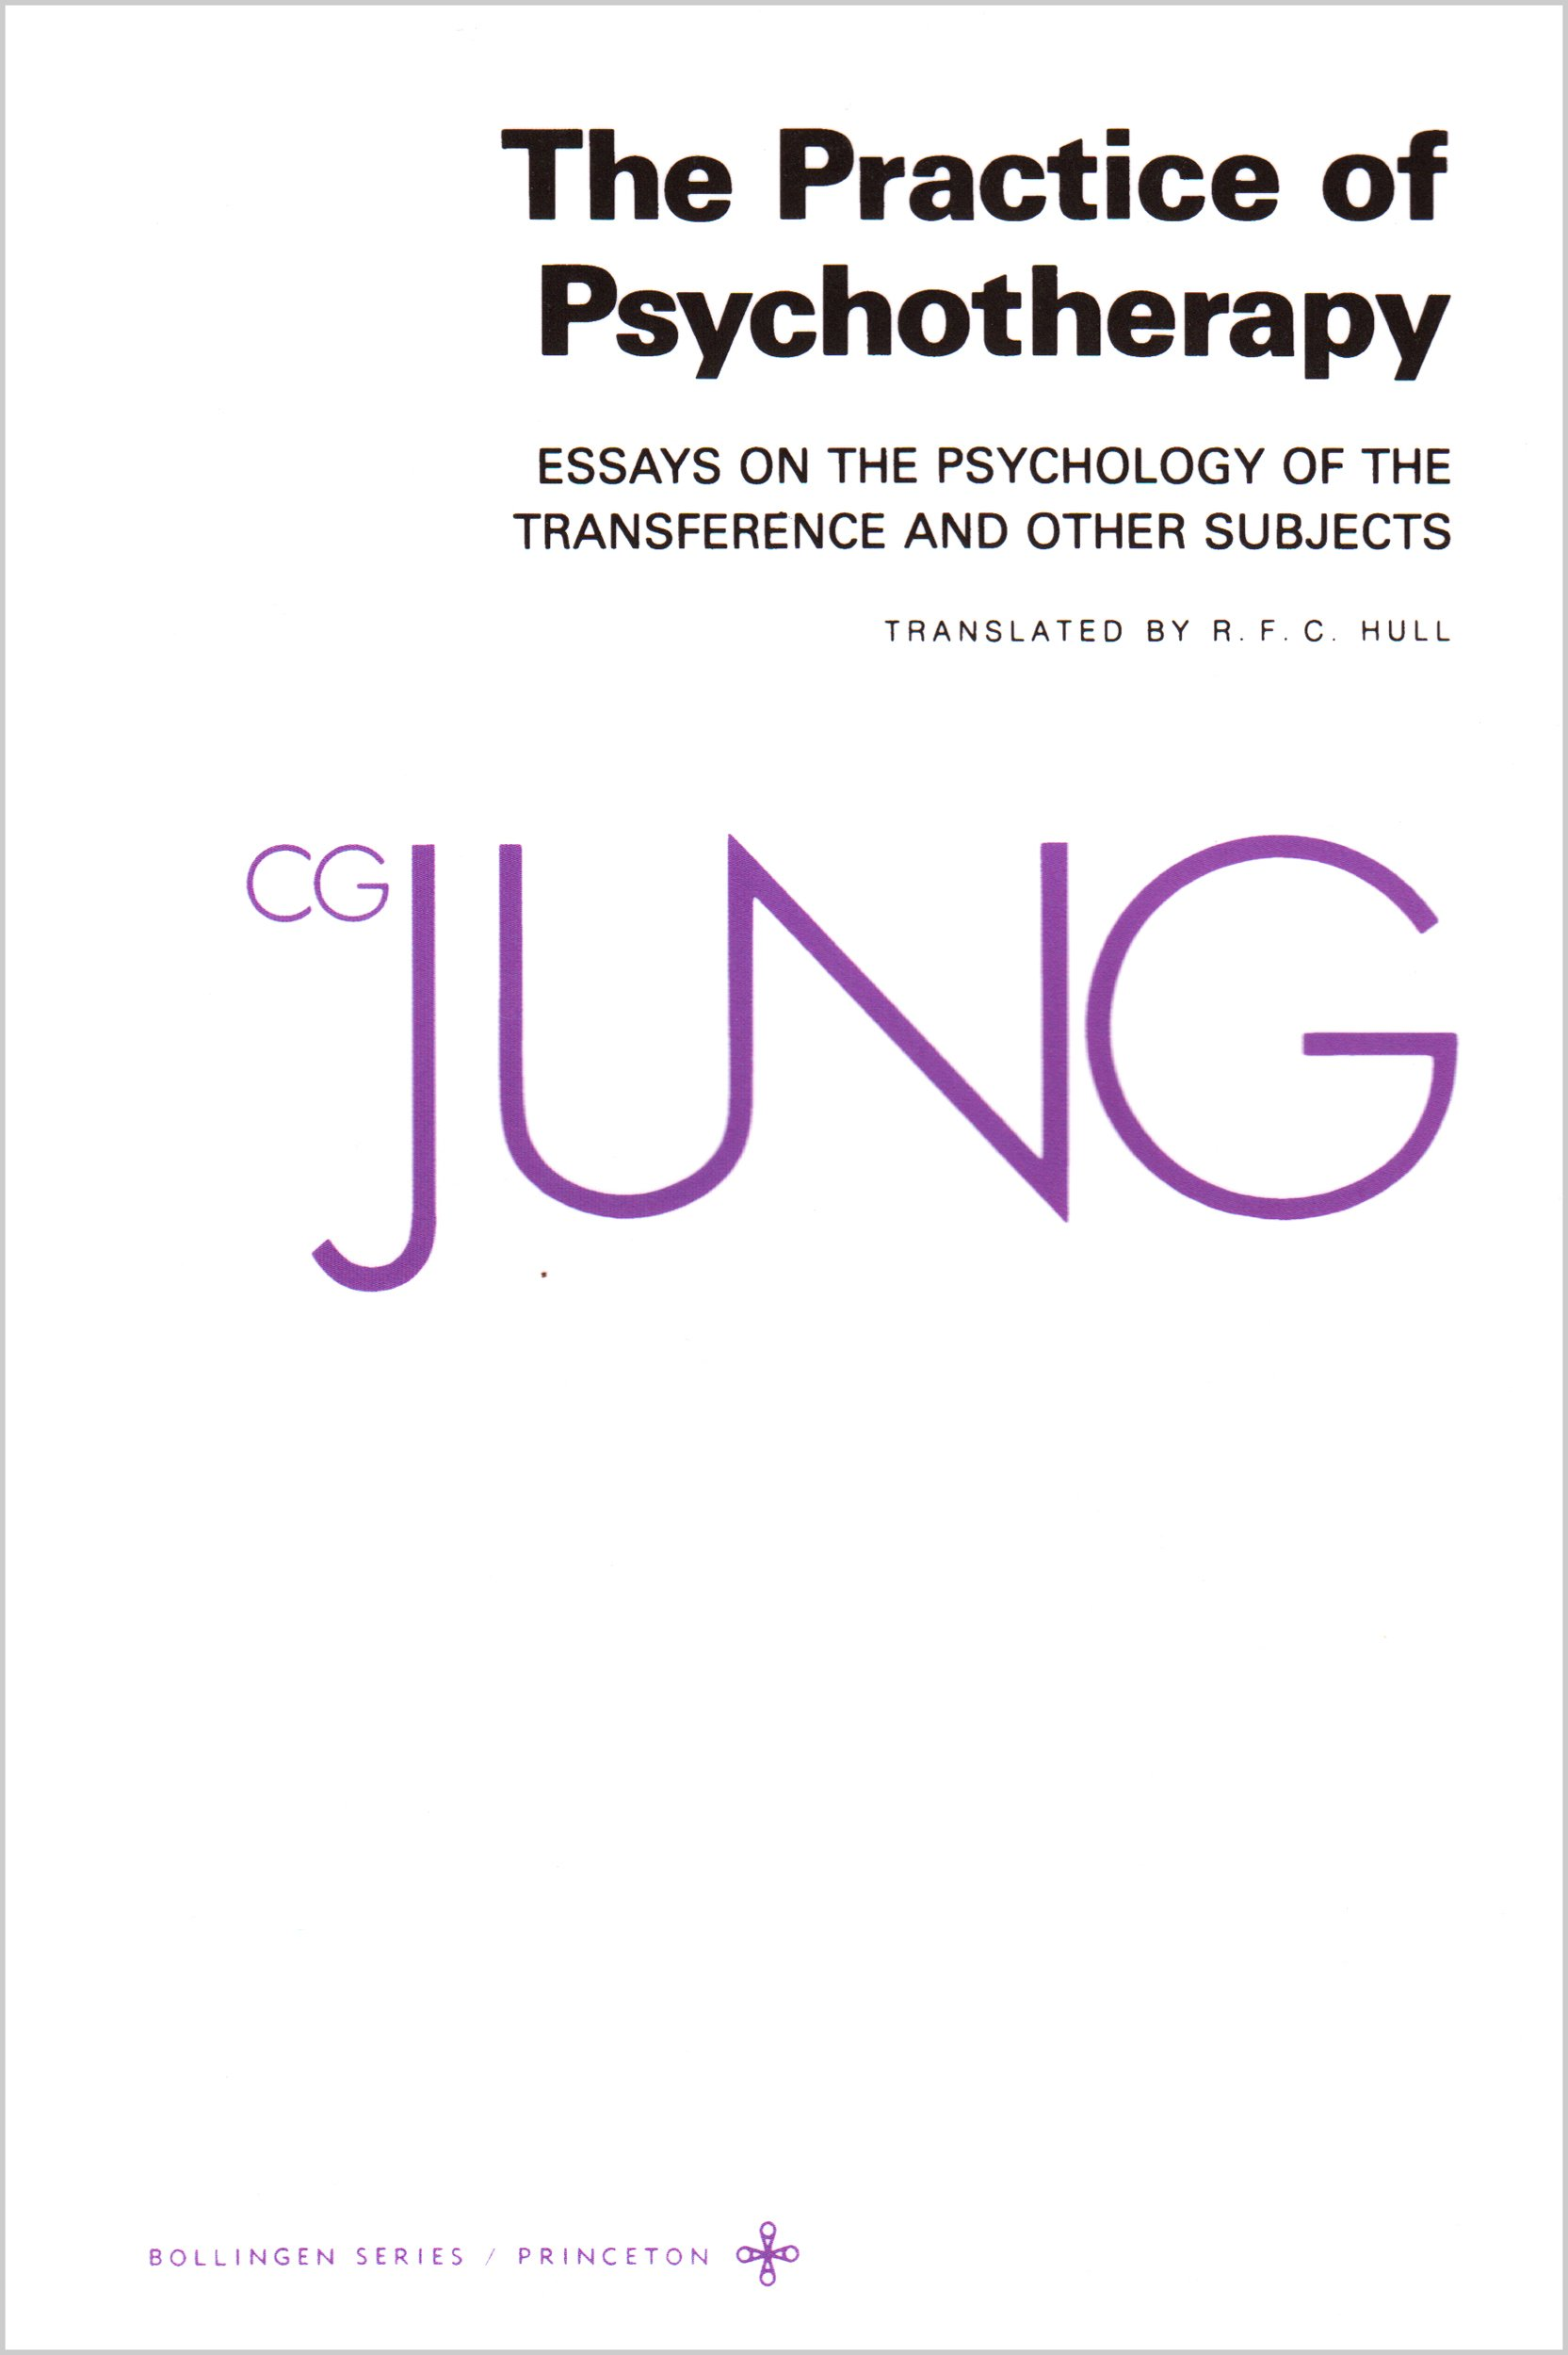 com the practice of psychotherapy essays on the com the practice of psychotherapy essays on the psychology of the transference and other subjects bollingen series 9780691018706 c g jung